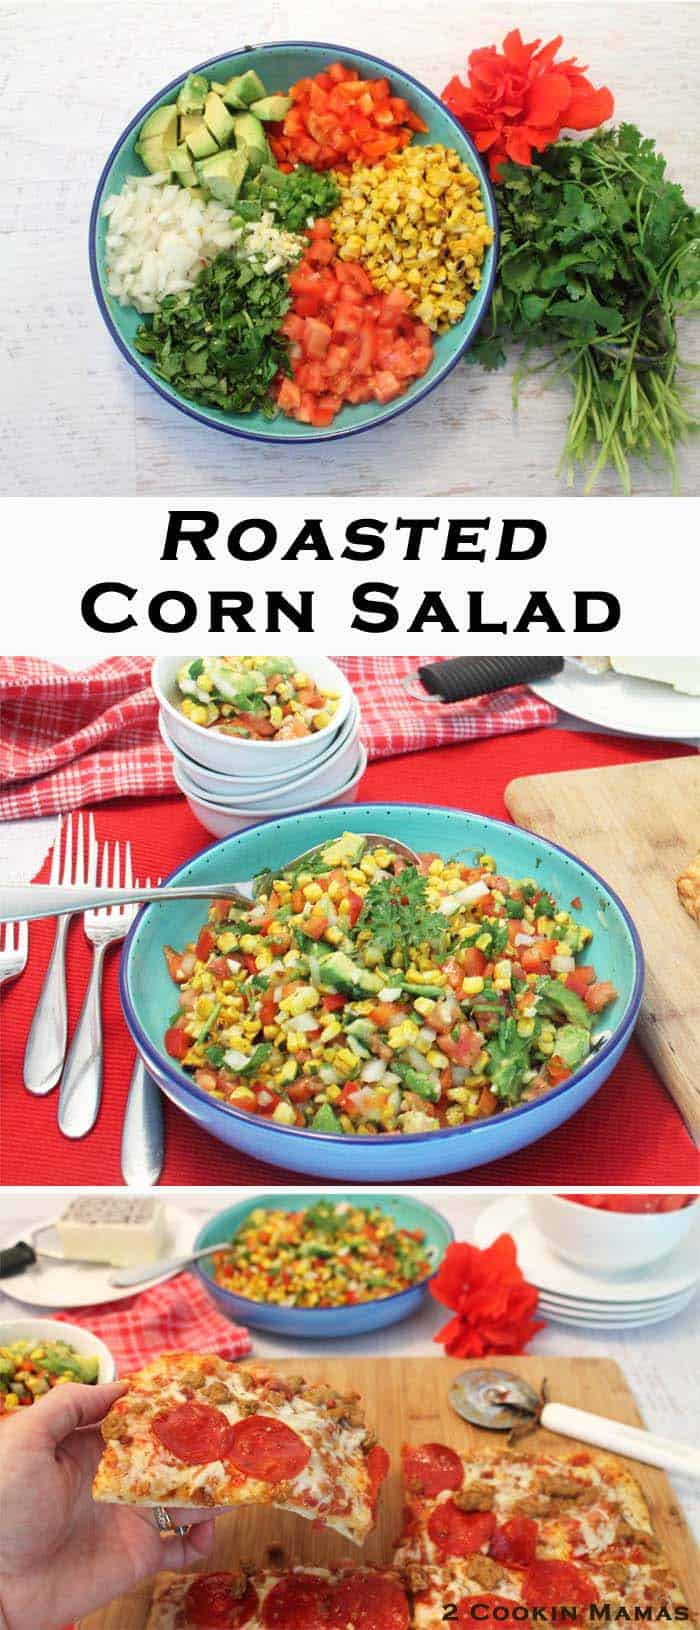 Roasted Corn Salad pin 2| 2 Cookin Mamas Fresh, healthy & delicious, this roasted corn salad is a tasty addition to any meal. #recipe #salad #healthy #ad #FreschEats #CollectiveBias